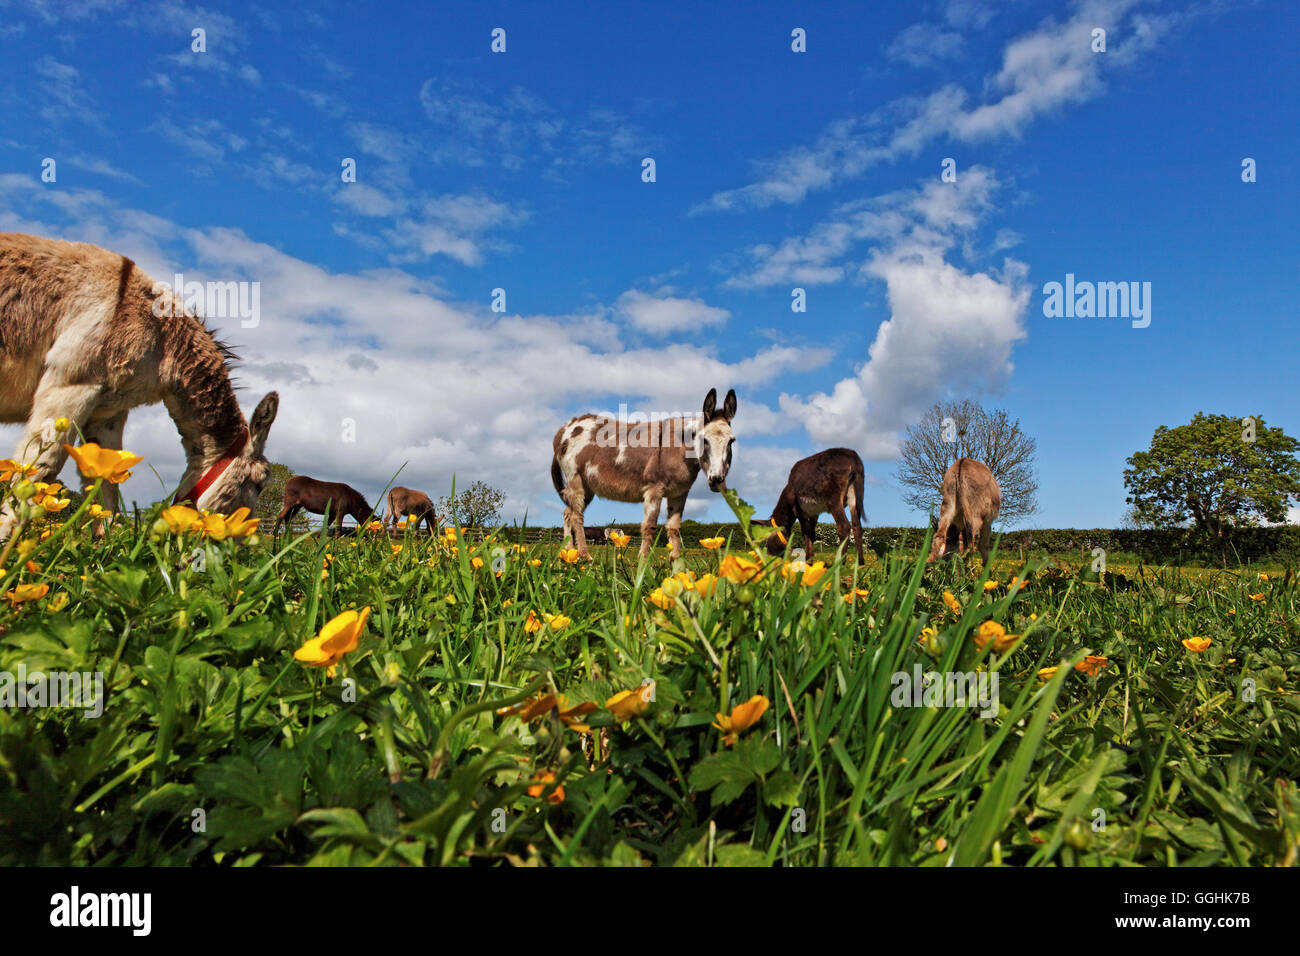 The Donkey Sanctuary, Sidmouth, Devon, England, Great Britain - Stock Image